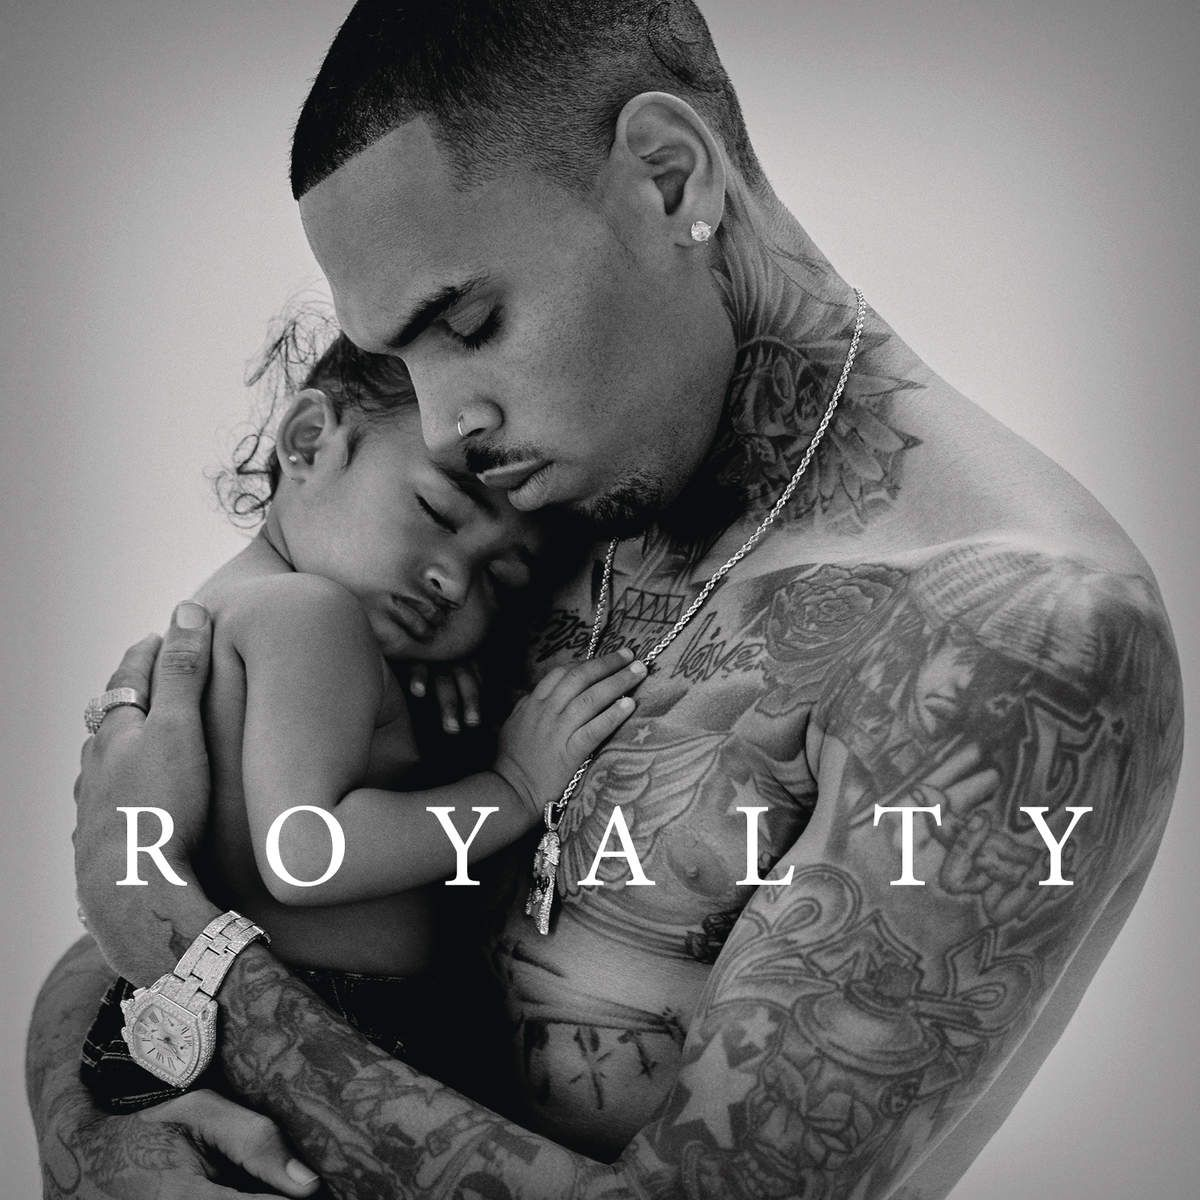 Download chris brown royalty 2015deluxe edition cdrip mp3 download chris brown royalty 2015deluxe edition cdrip mp3 ccuart Choice Image